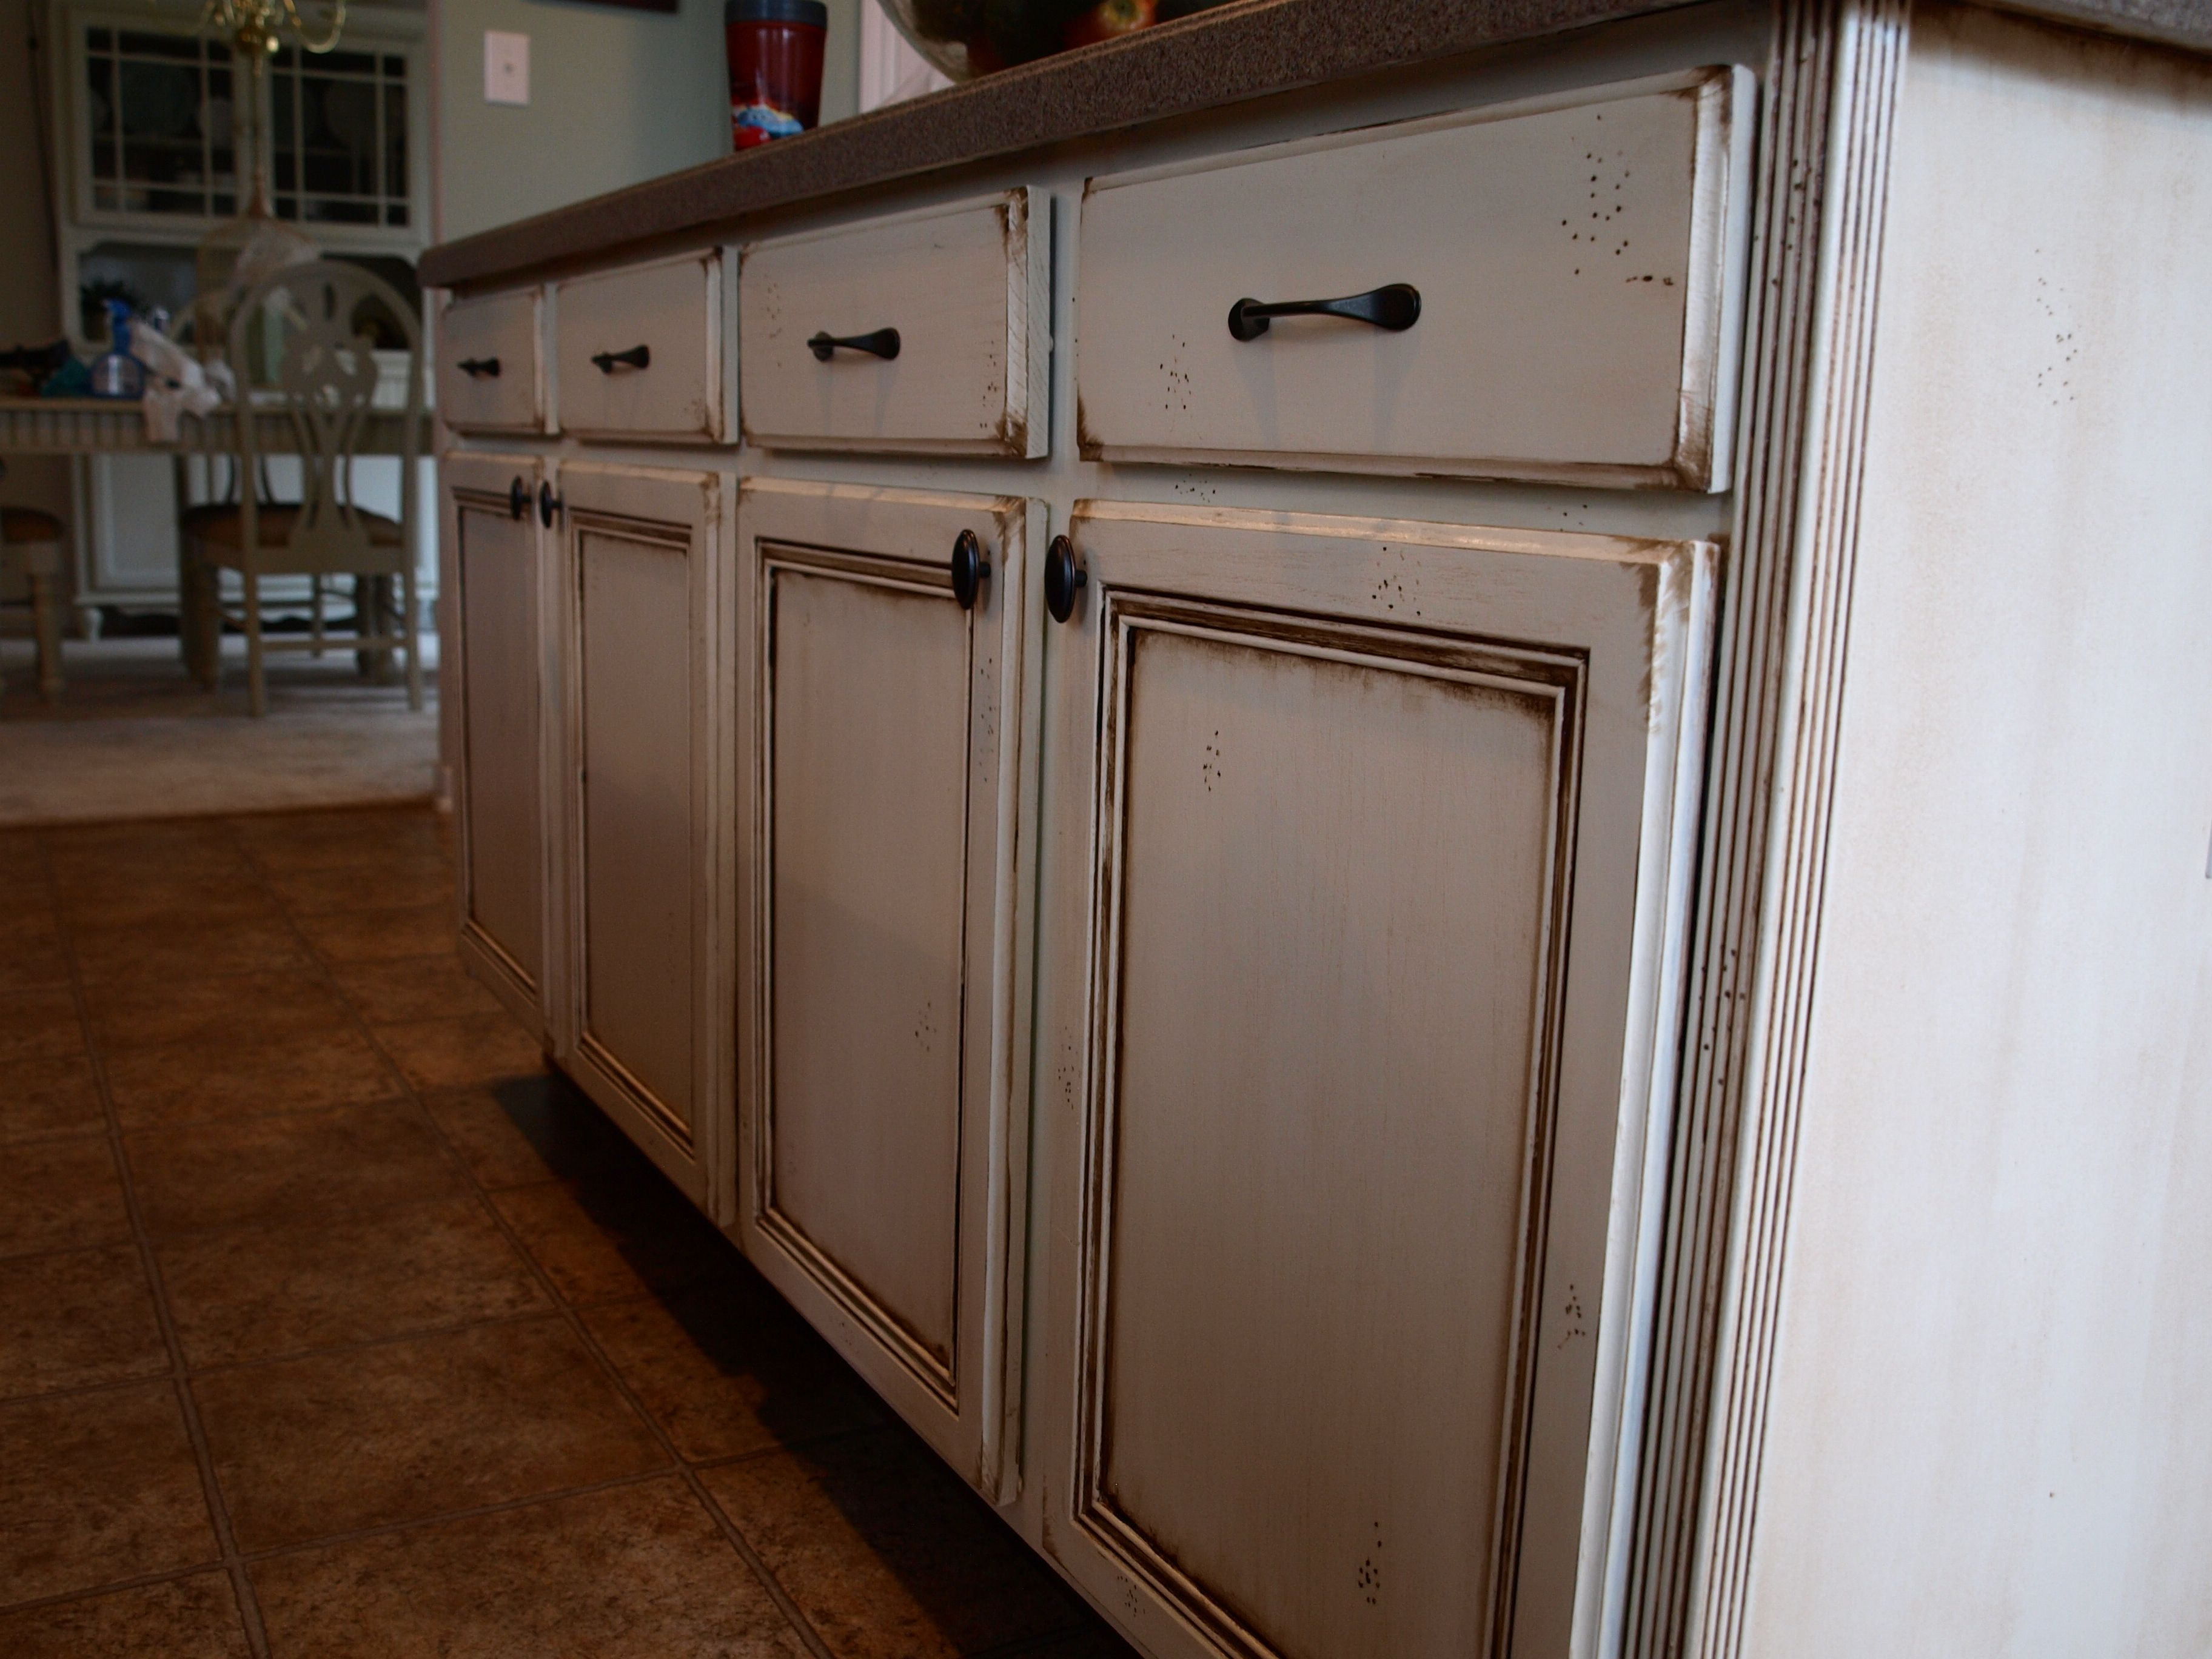 How To Paint And Antique Kitchen Cabinets My Way Antique Kitchen Cabinets Antique Cabinets Antique Kitchen